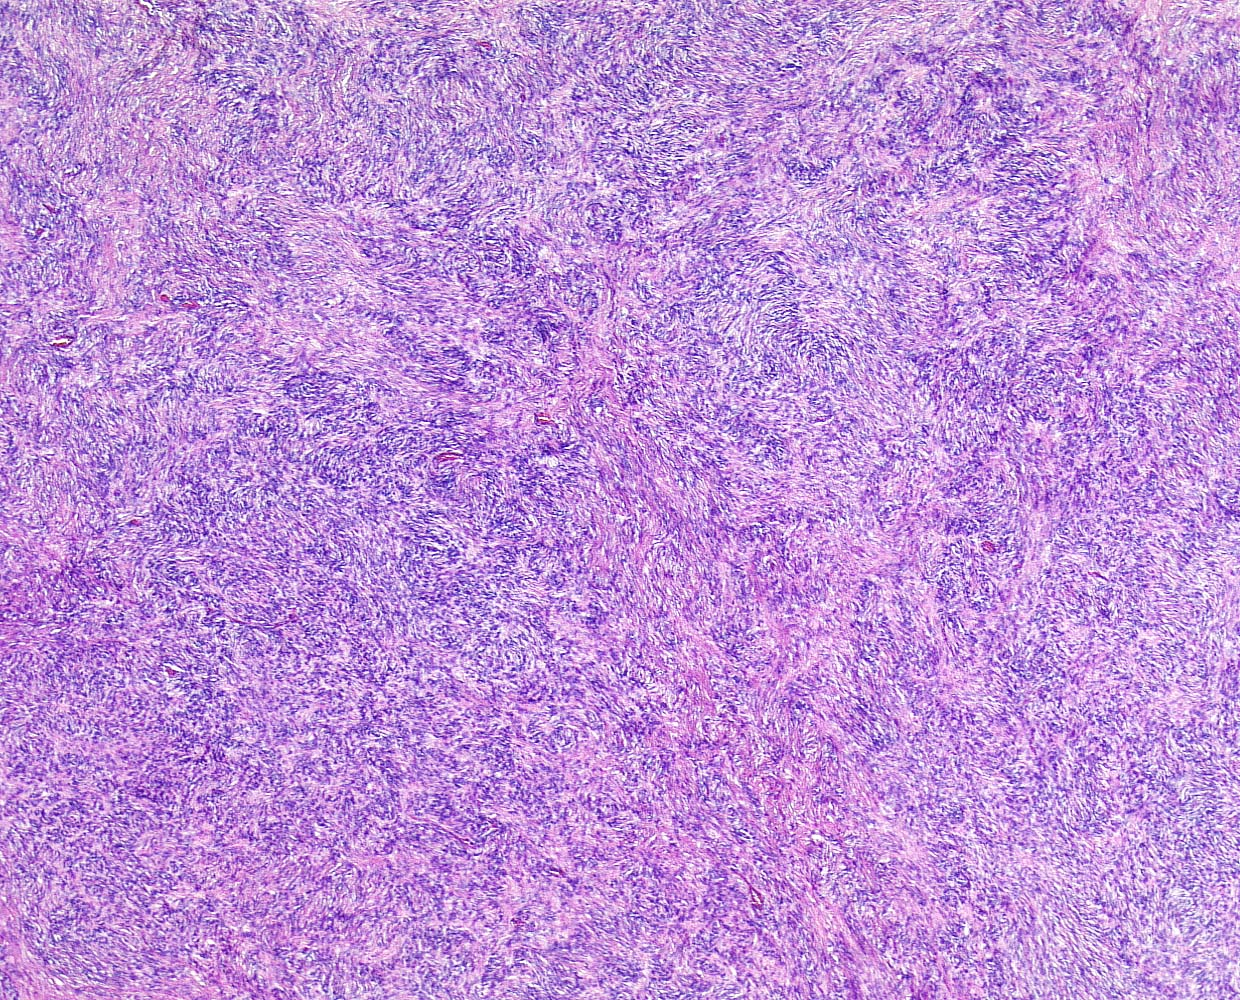 Fibrous histiocytoma-like pattern